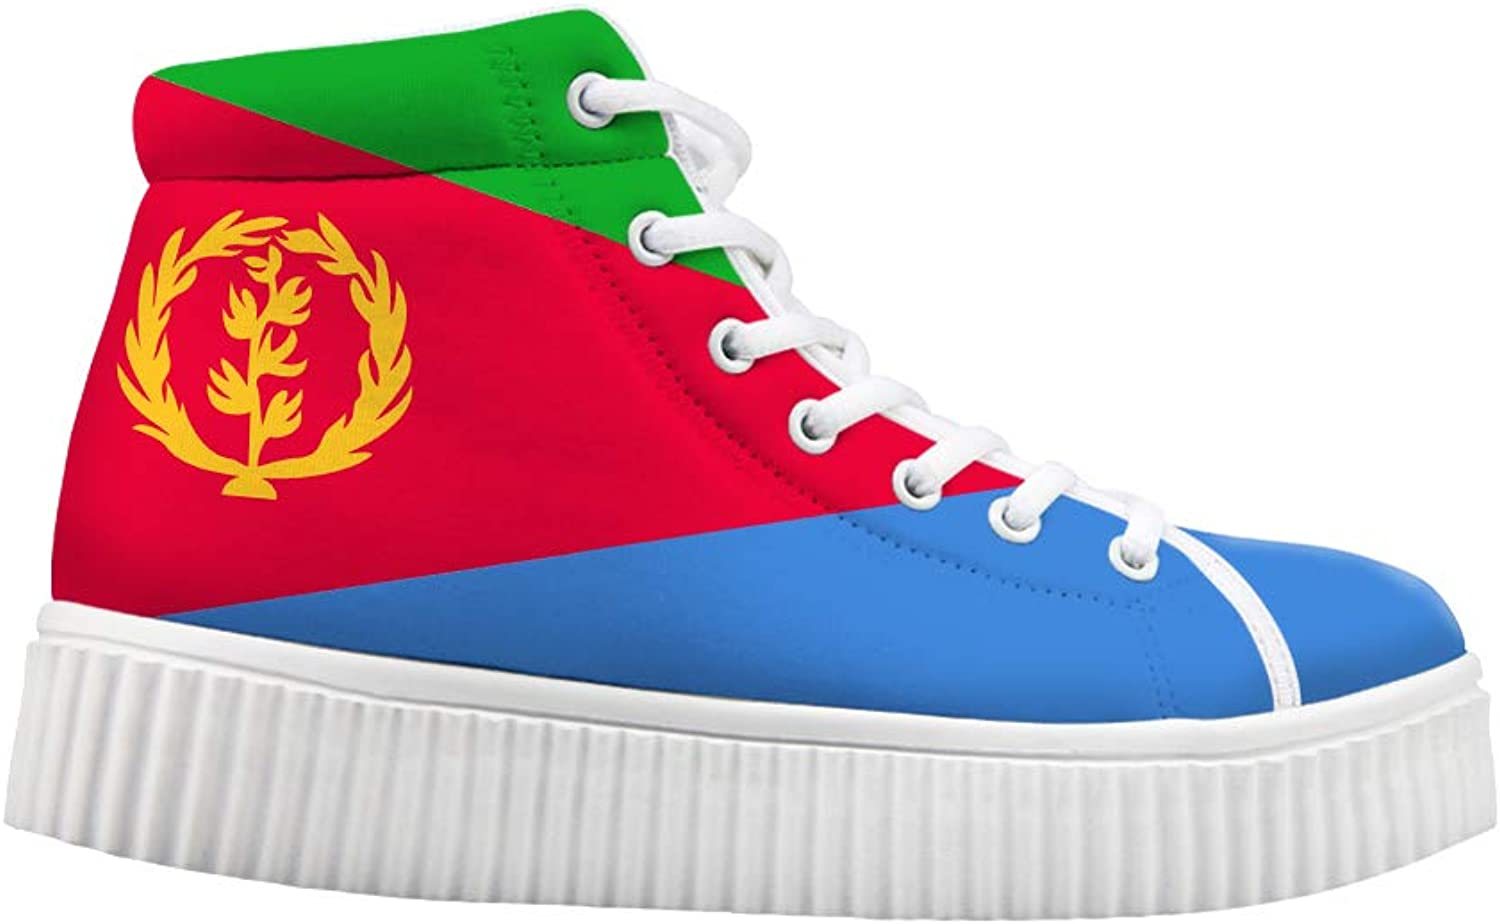 Owaheson Platform Lace up Sneaker Casual Chunky Walking shoes High Top Women Eritrea Flag